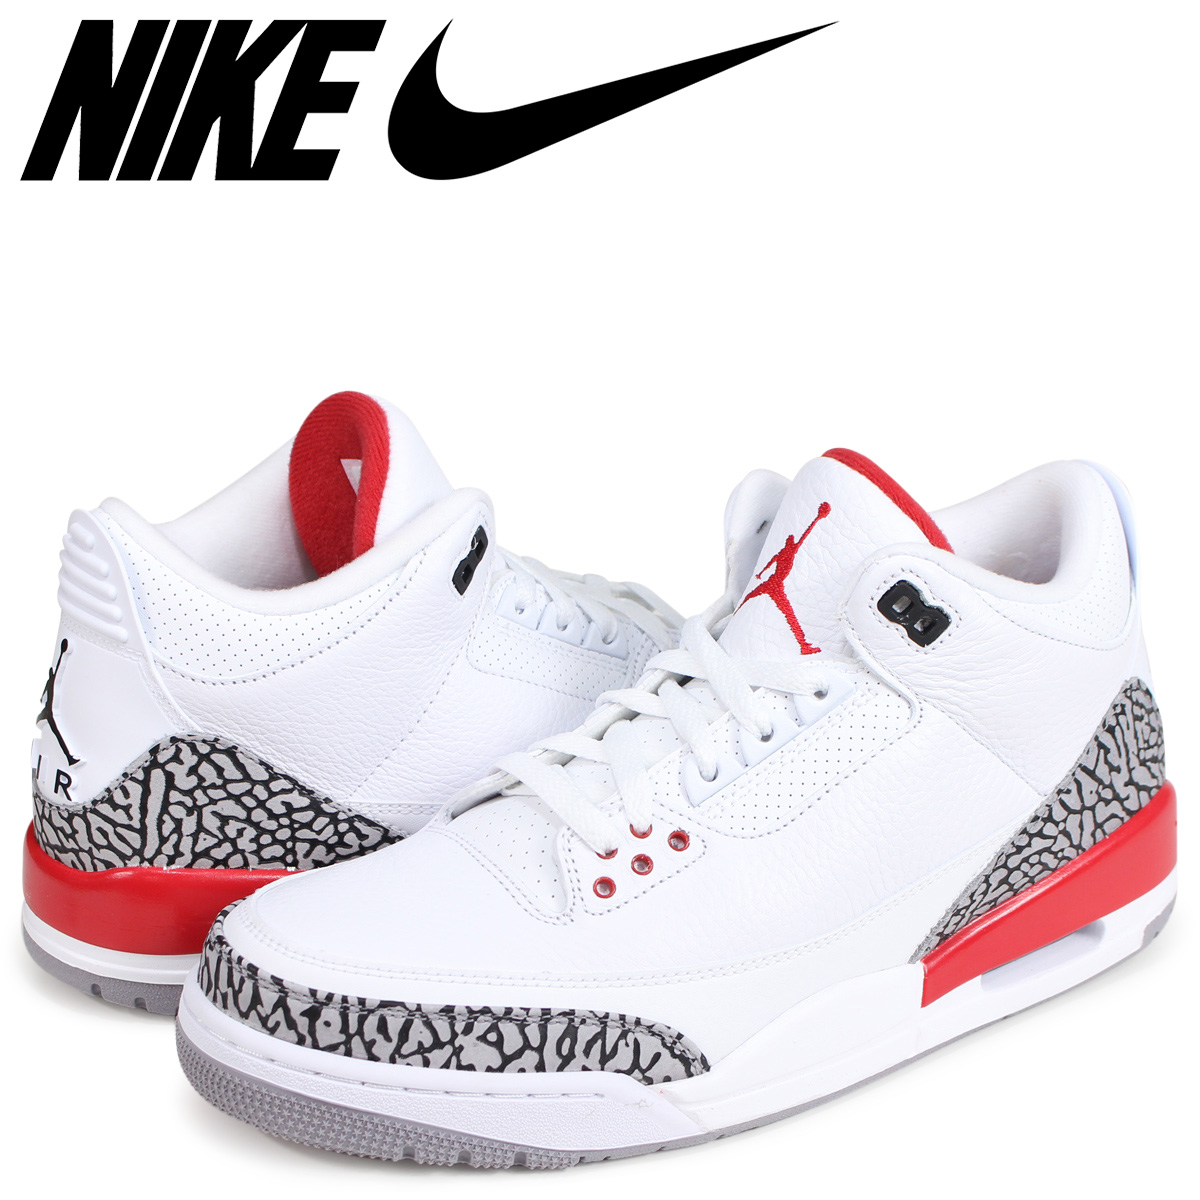 Nostalgic Men ShopNike 3 Jordan Sneakers Online Air Sugar pSUMGqzV